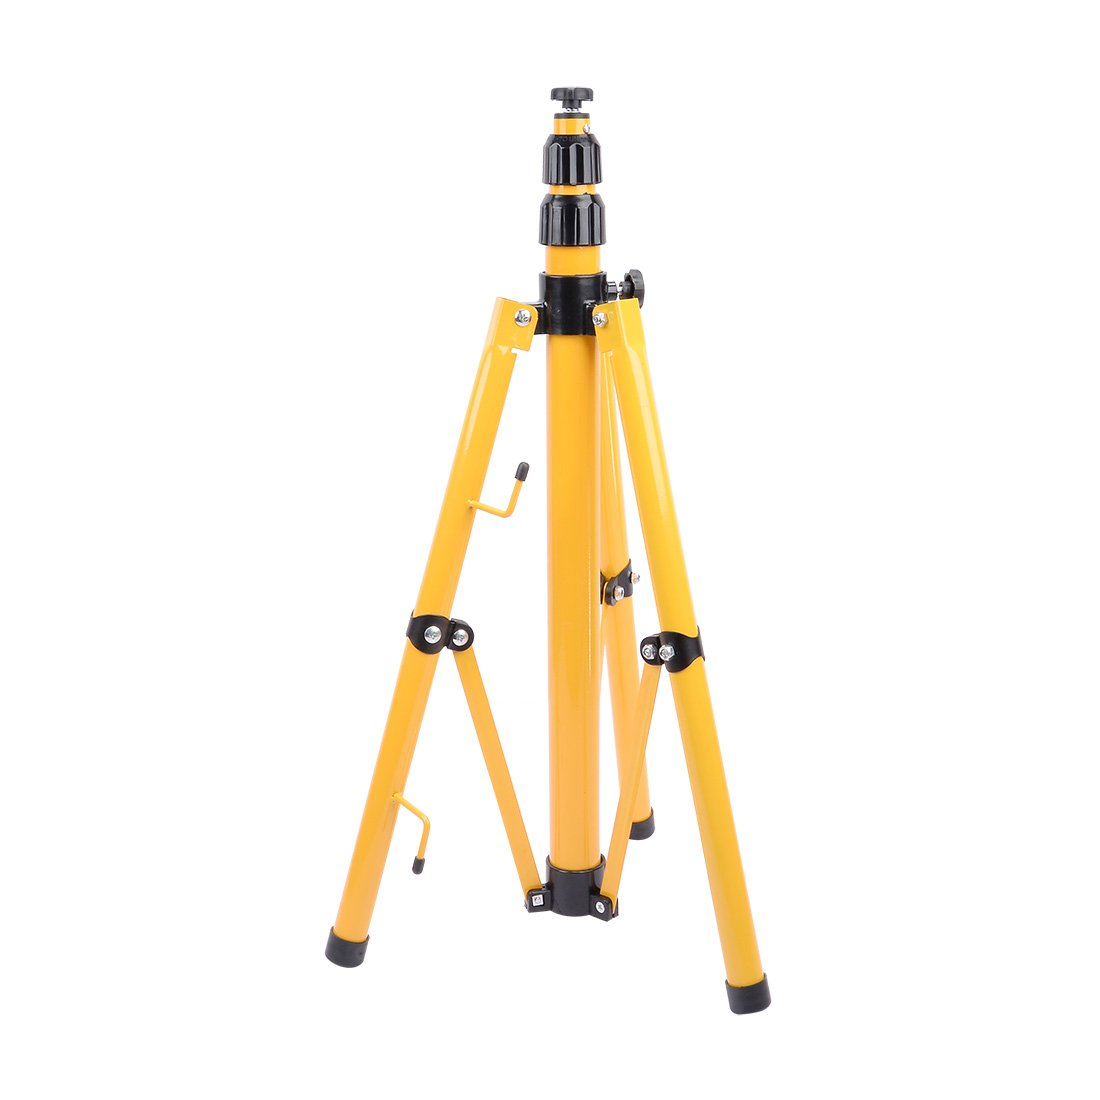 uxcell LED Work light Stand Adjustable Tripod for LED Flood Light